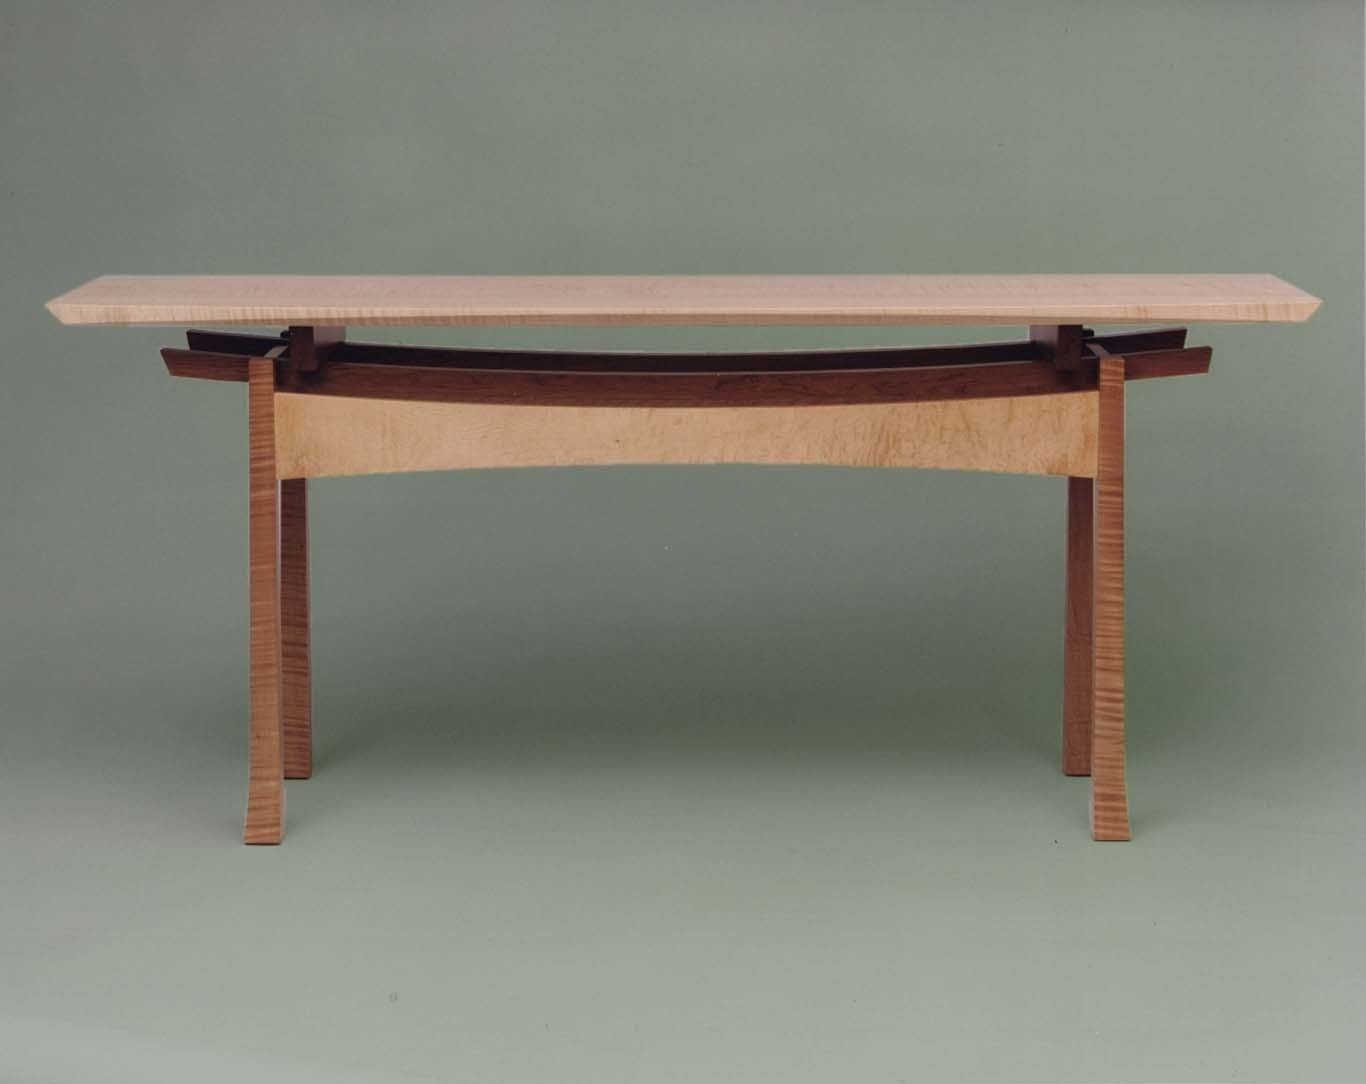 Handmade The Japanese Consul Console Table By Hartcorn